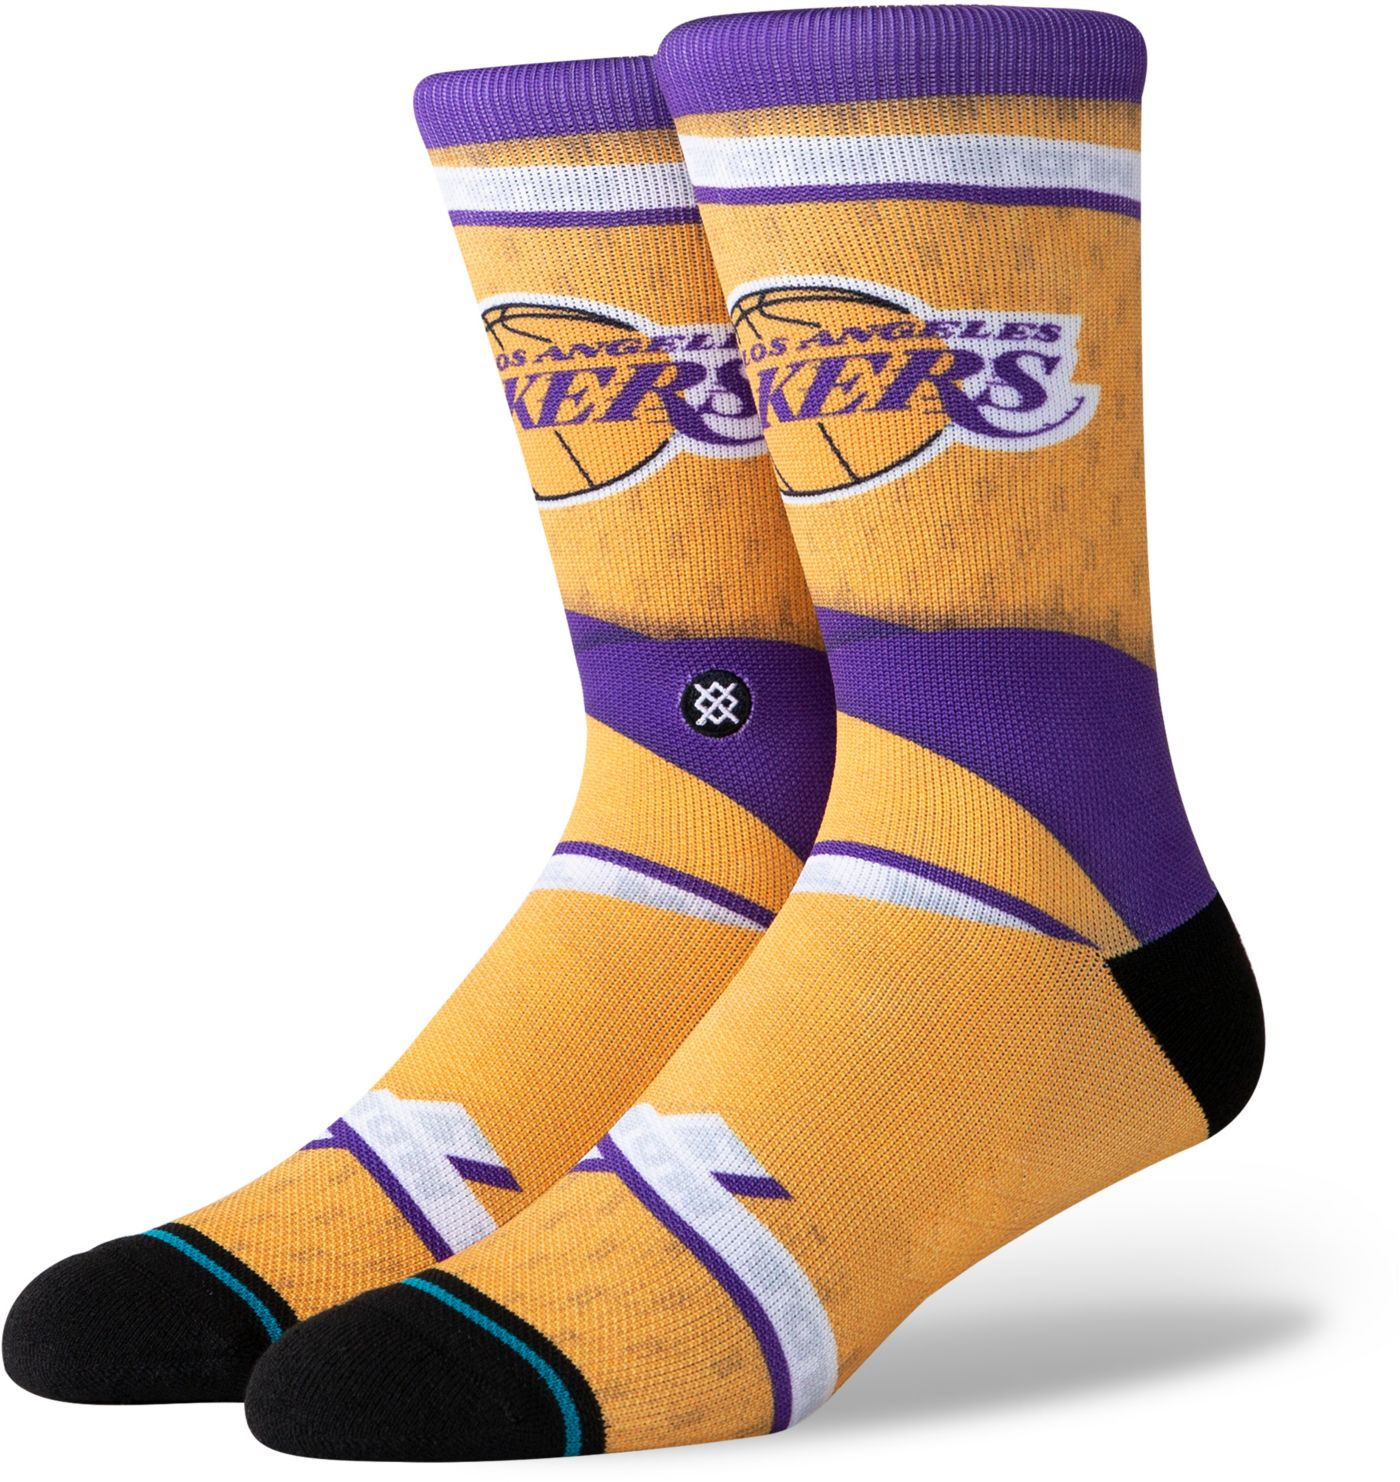 Stance Los Angeles Lakers City Edition Jersey Crew Socks